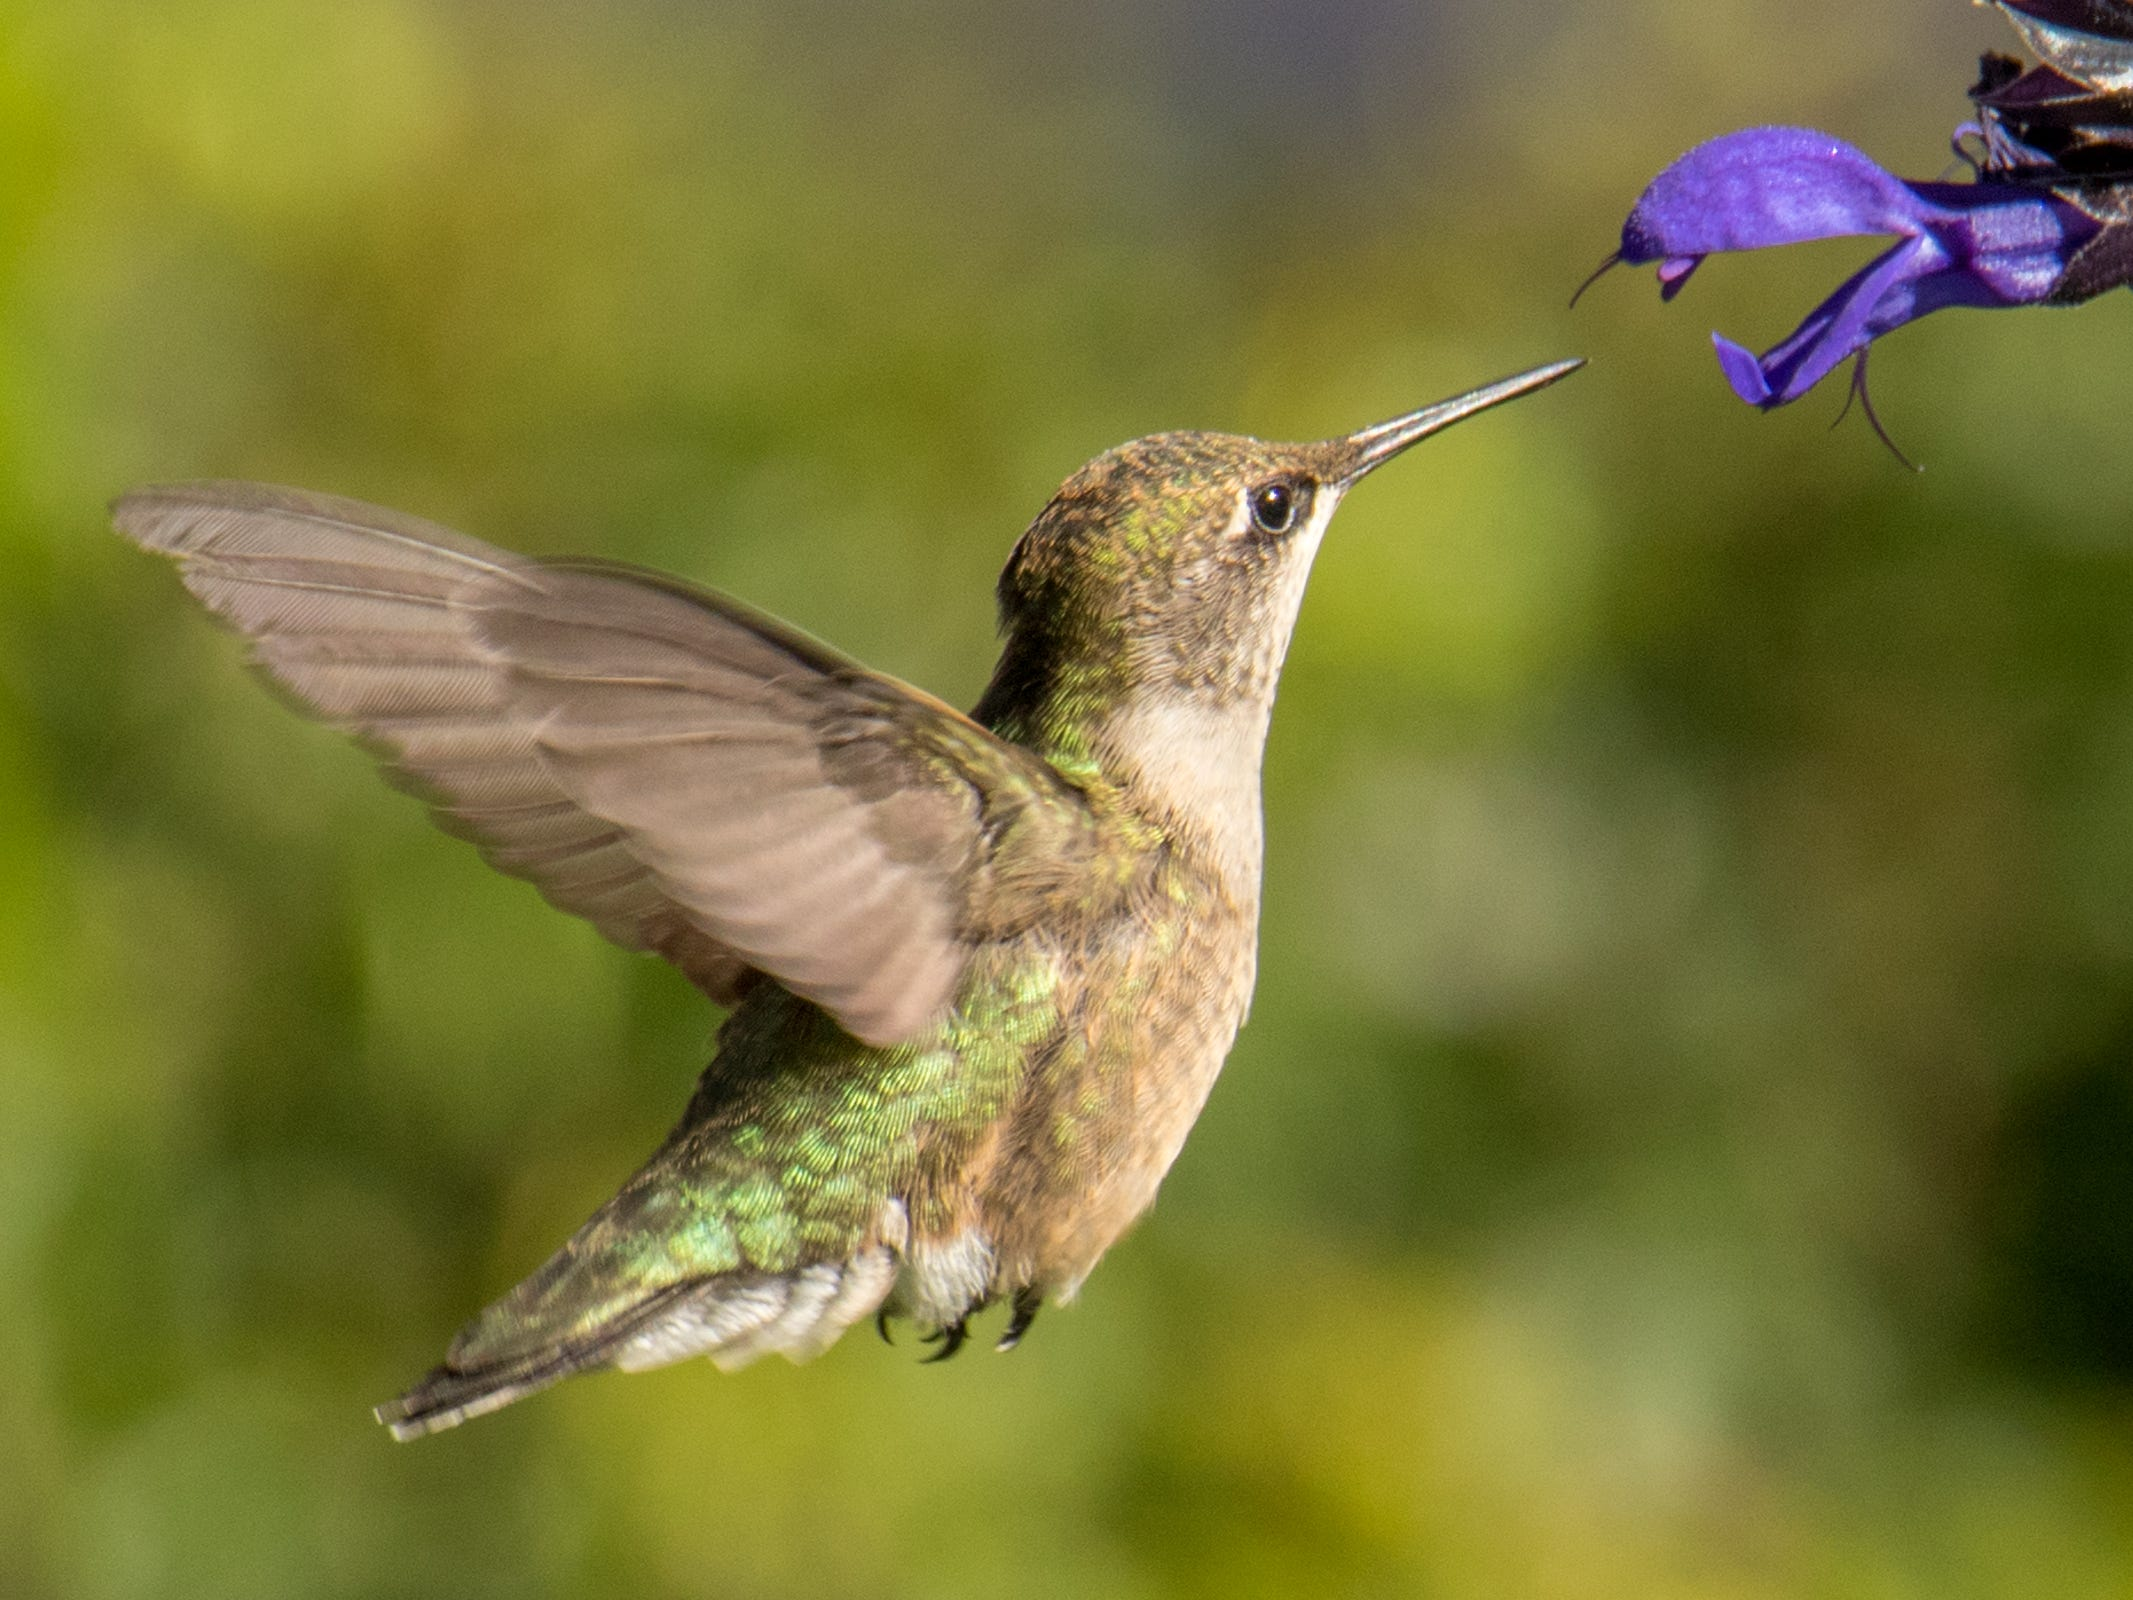 The thrill of having a tiny ruby-throated hummingbird buzz by never gets old.